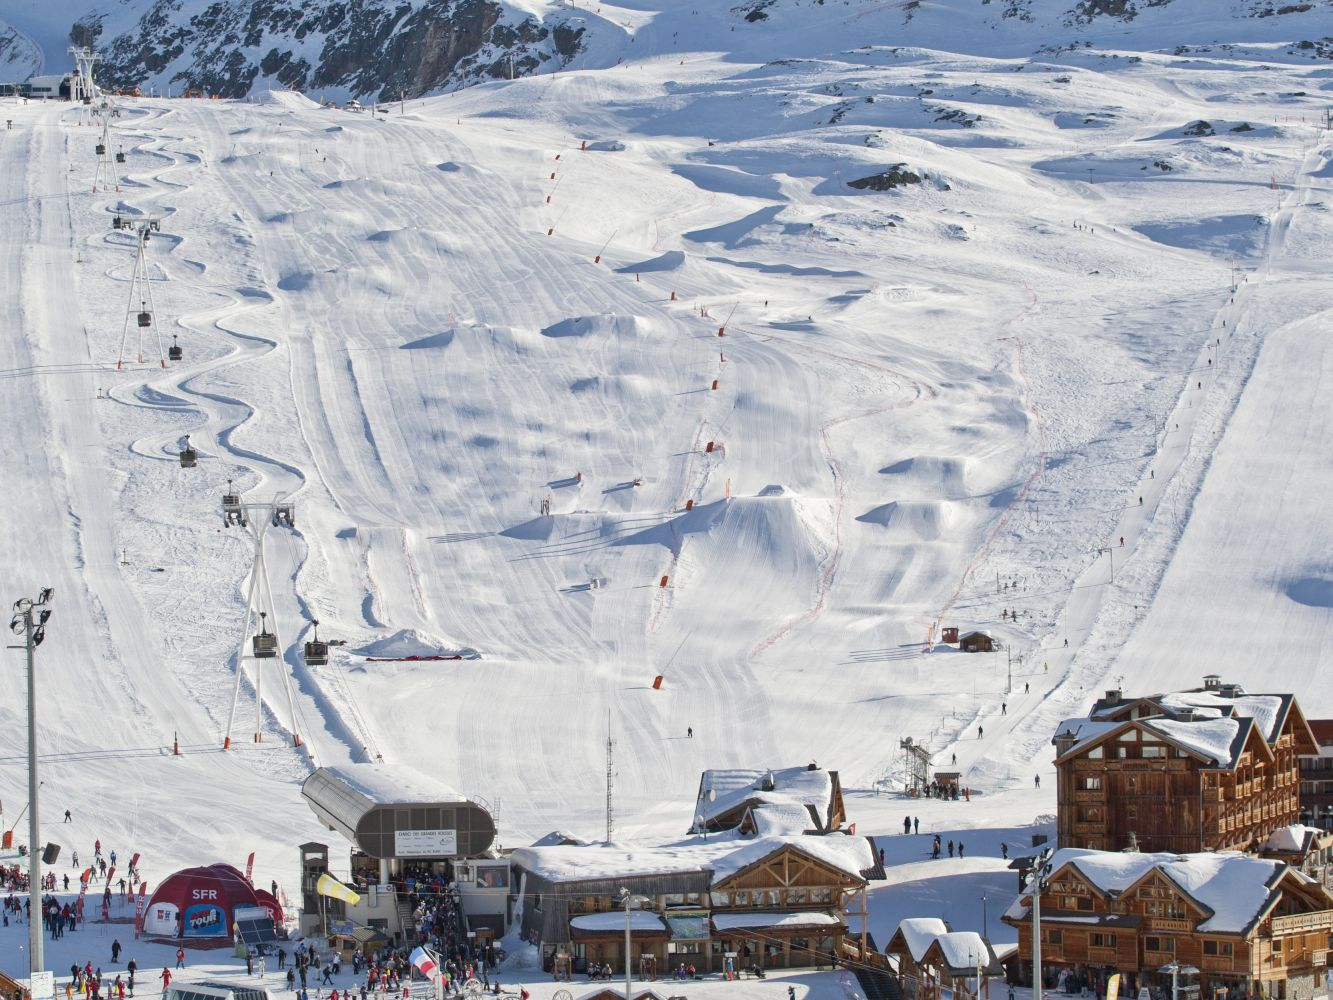 Chalets for winter sports in Alpe dHuez Grand Domaine